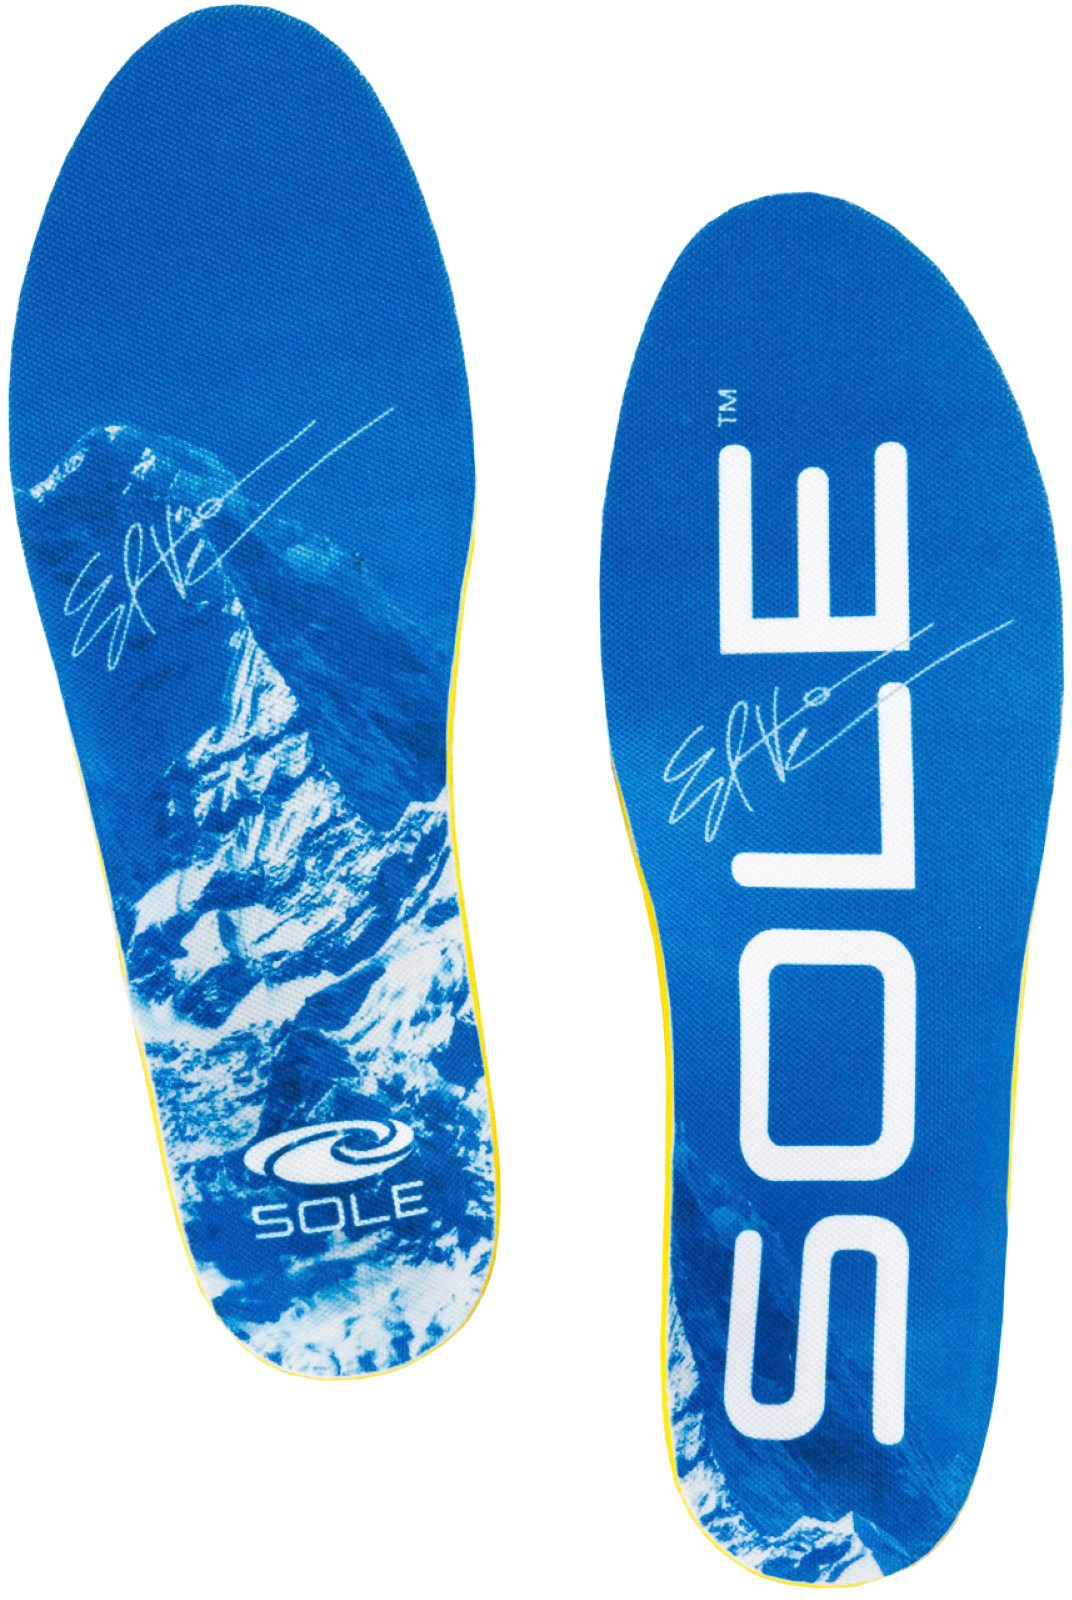 SOLE Performance Thick Insoles